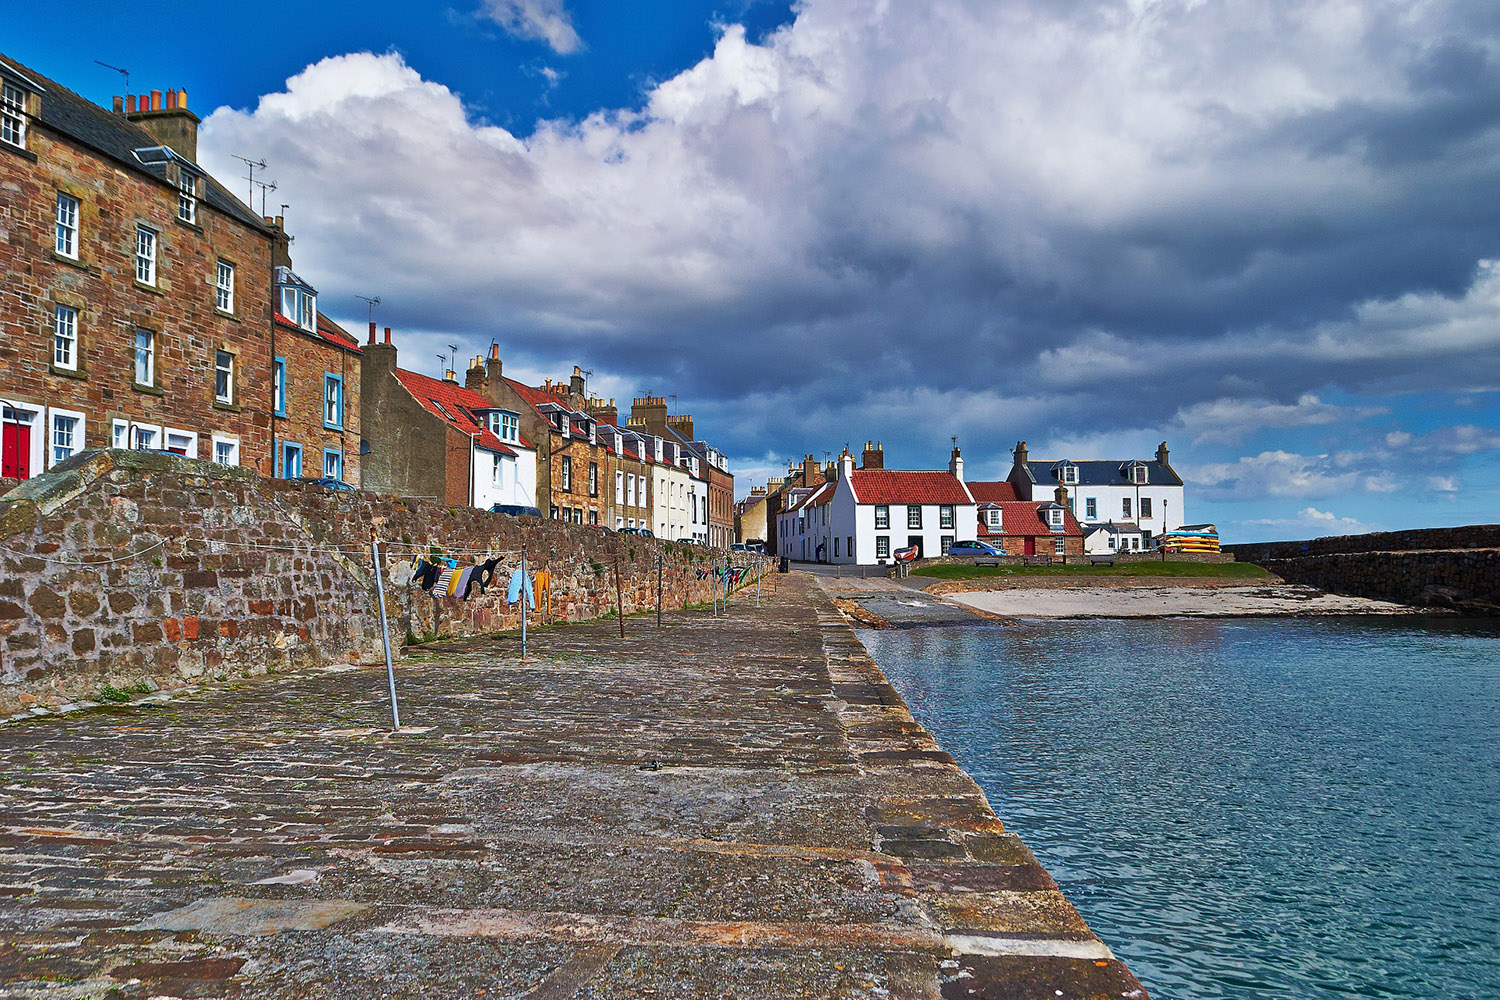 Anstruther Harbour is a harbour town that is visited during our royal and ancient tour of Scotland